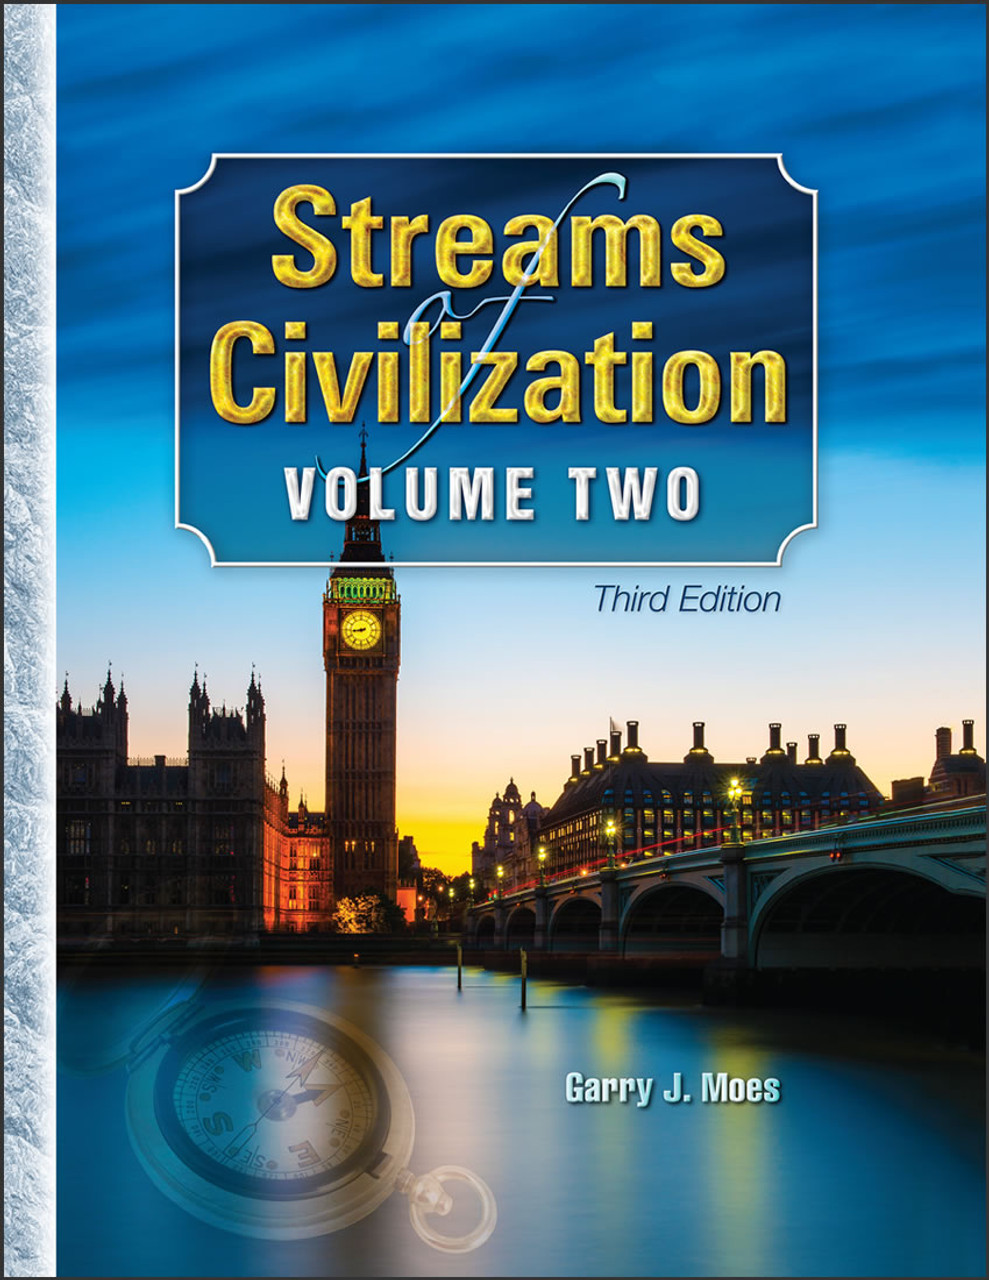 Streams of Civilization Volume Two, 3rd edition